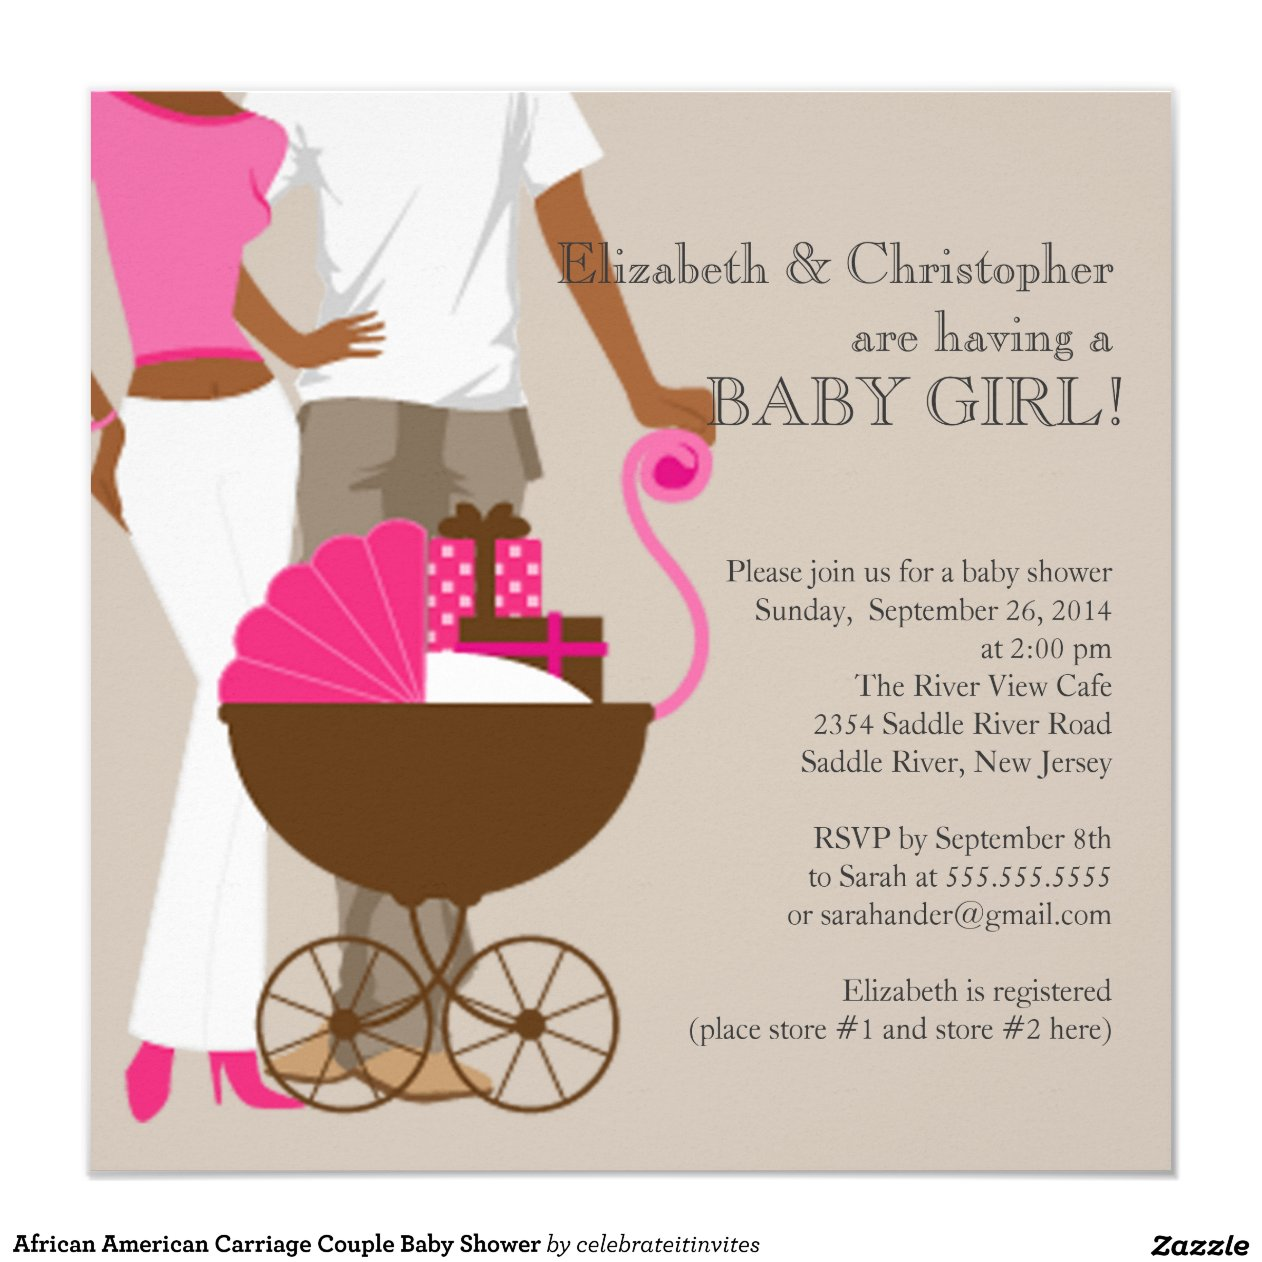 Create A Baby Shower Invitation is great invitations design